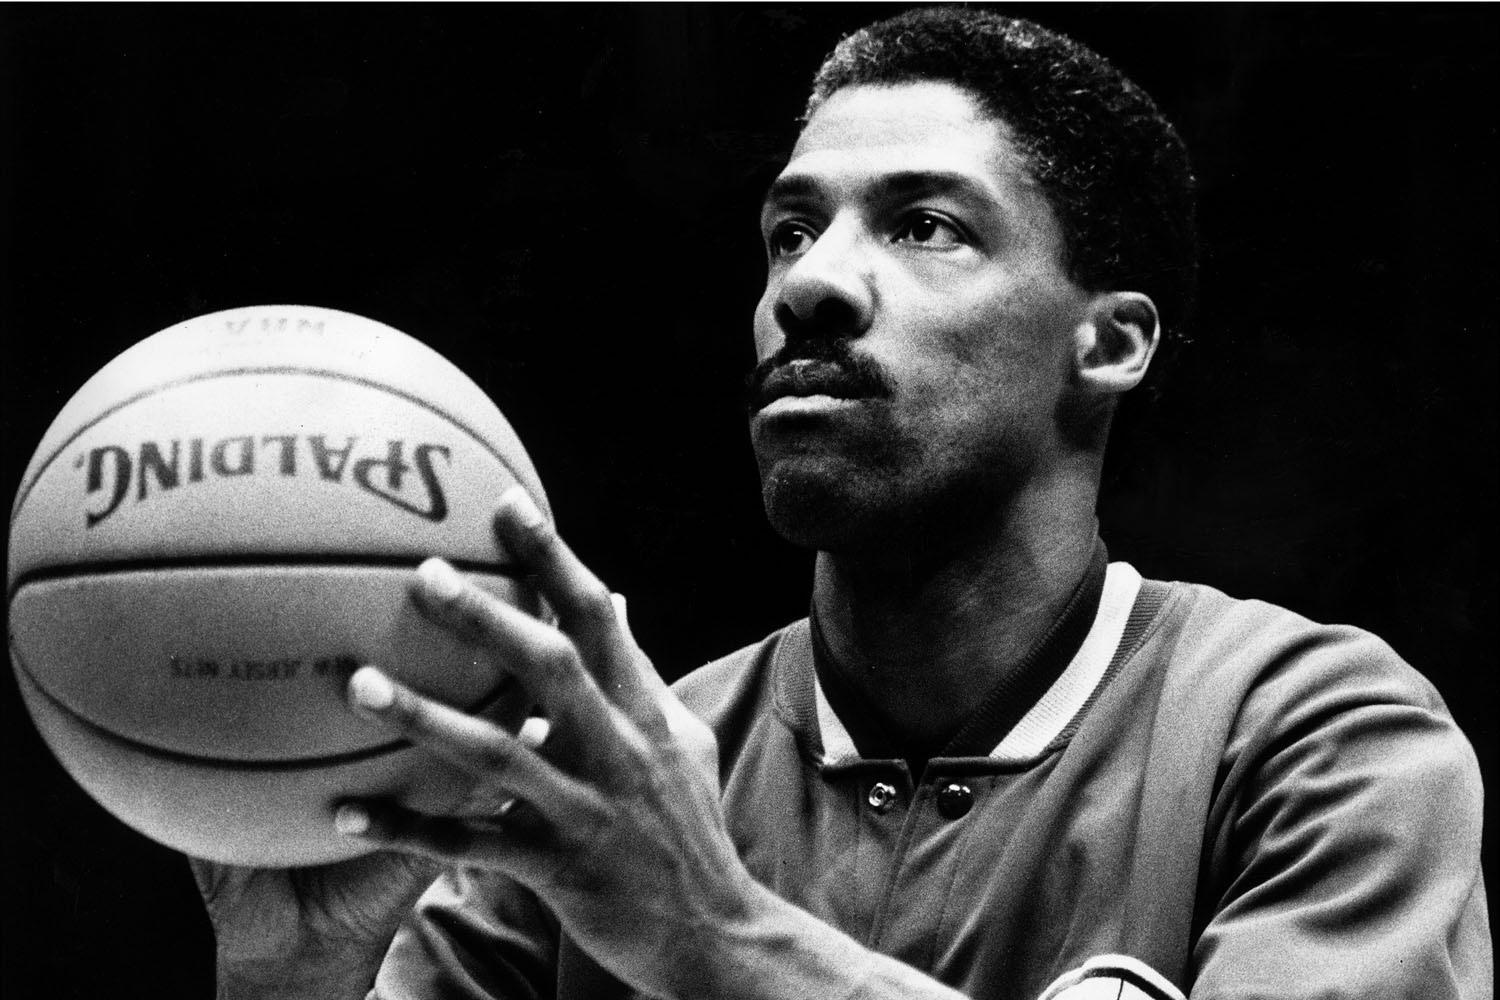 Philadelphia 76ers Julius Erving concentrates on his shooting as he warms up before a Nets game.